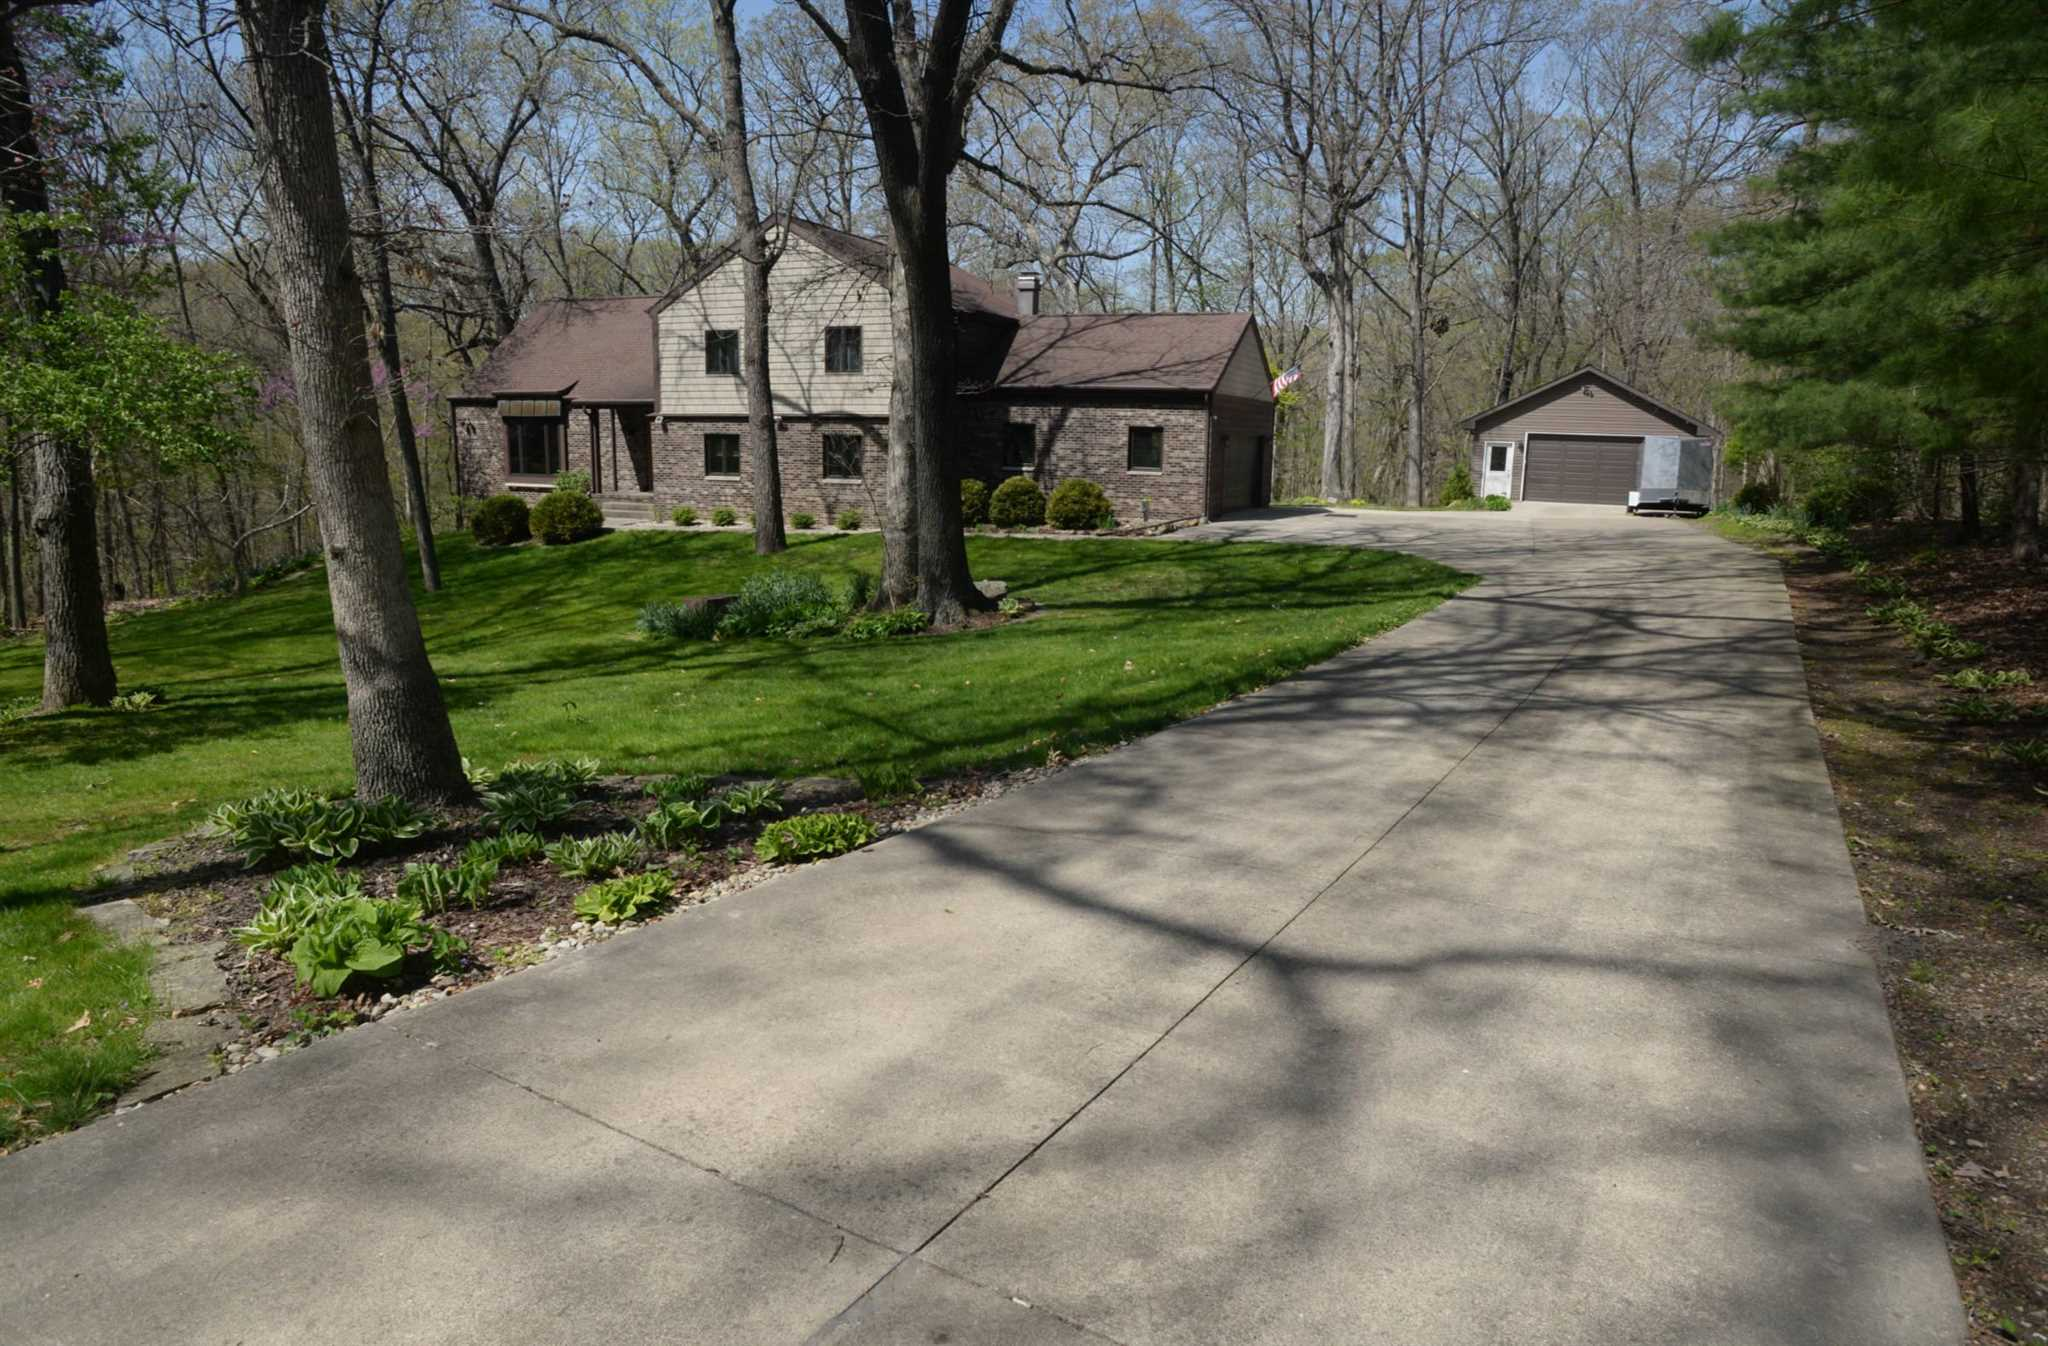 11913 W SWEETBRIAR Property Photo - Brimfield, IL real estate listing